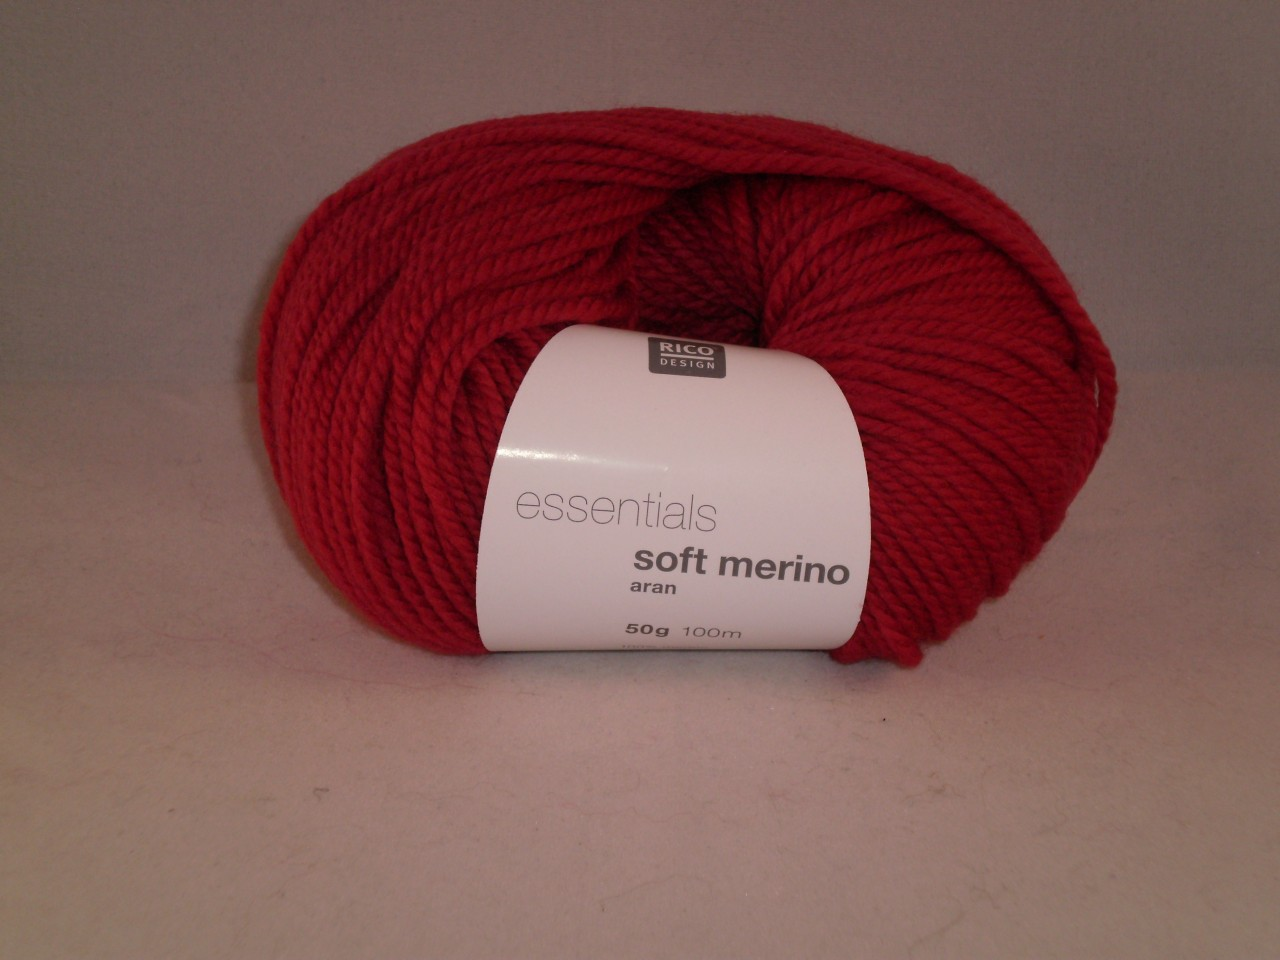 Rico Essentials Soft Merino Aran in Brick Red